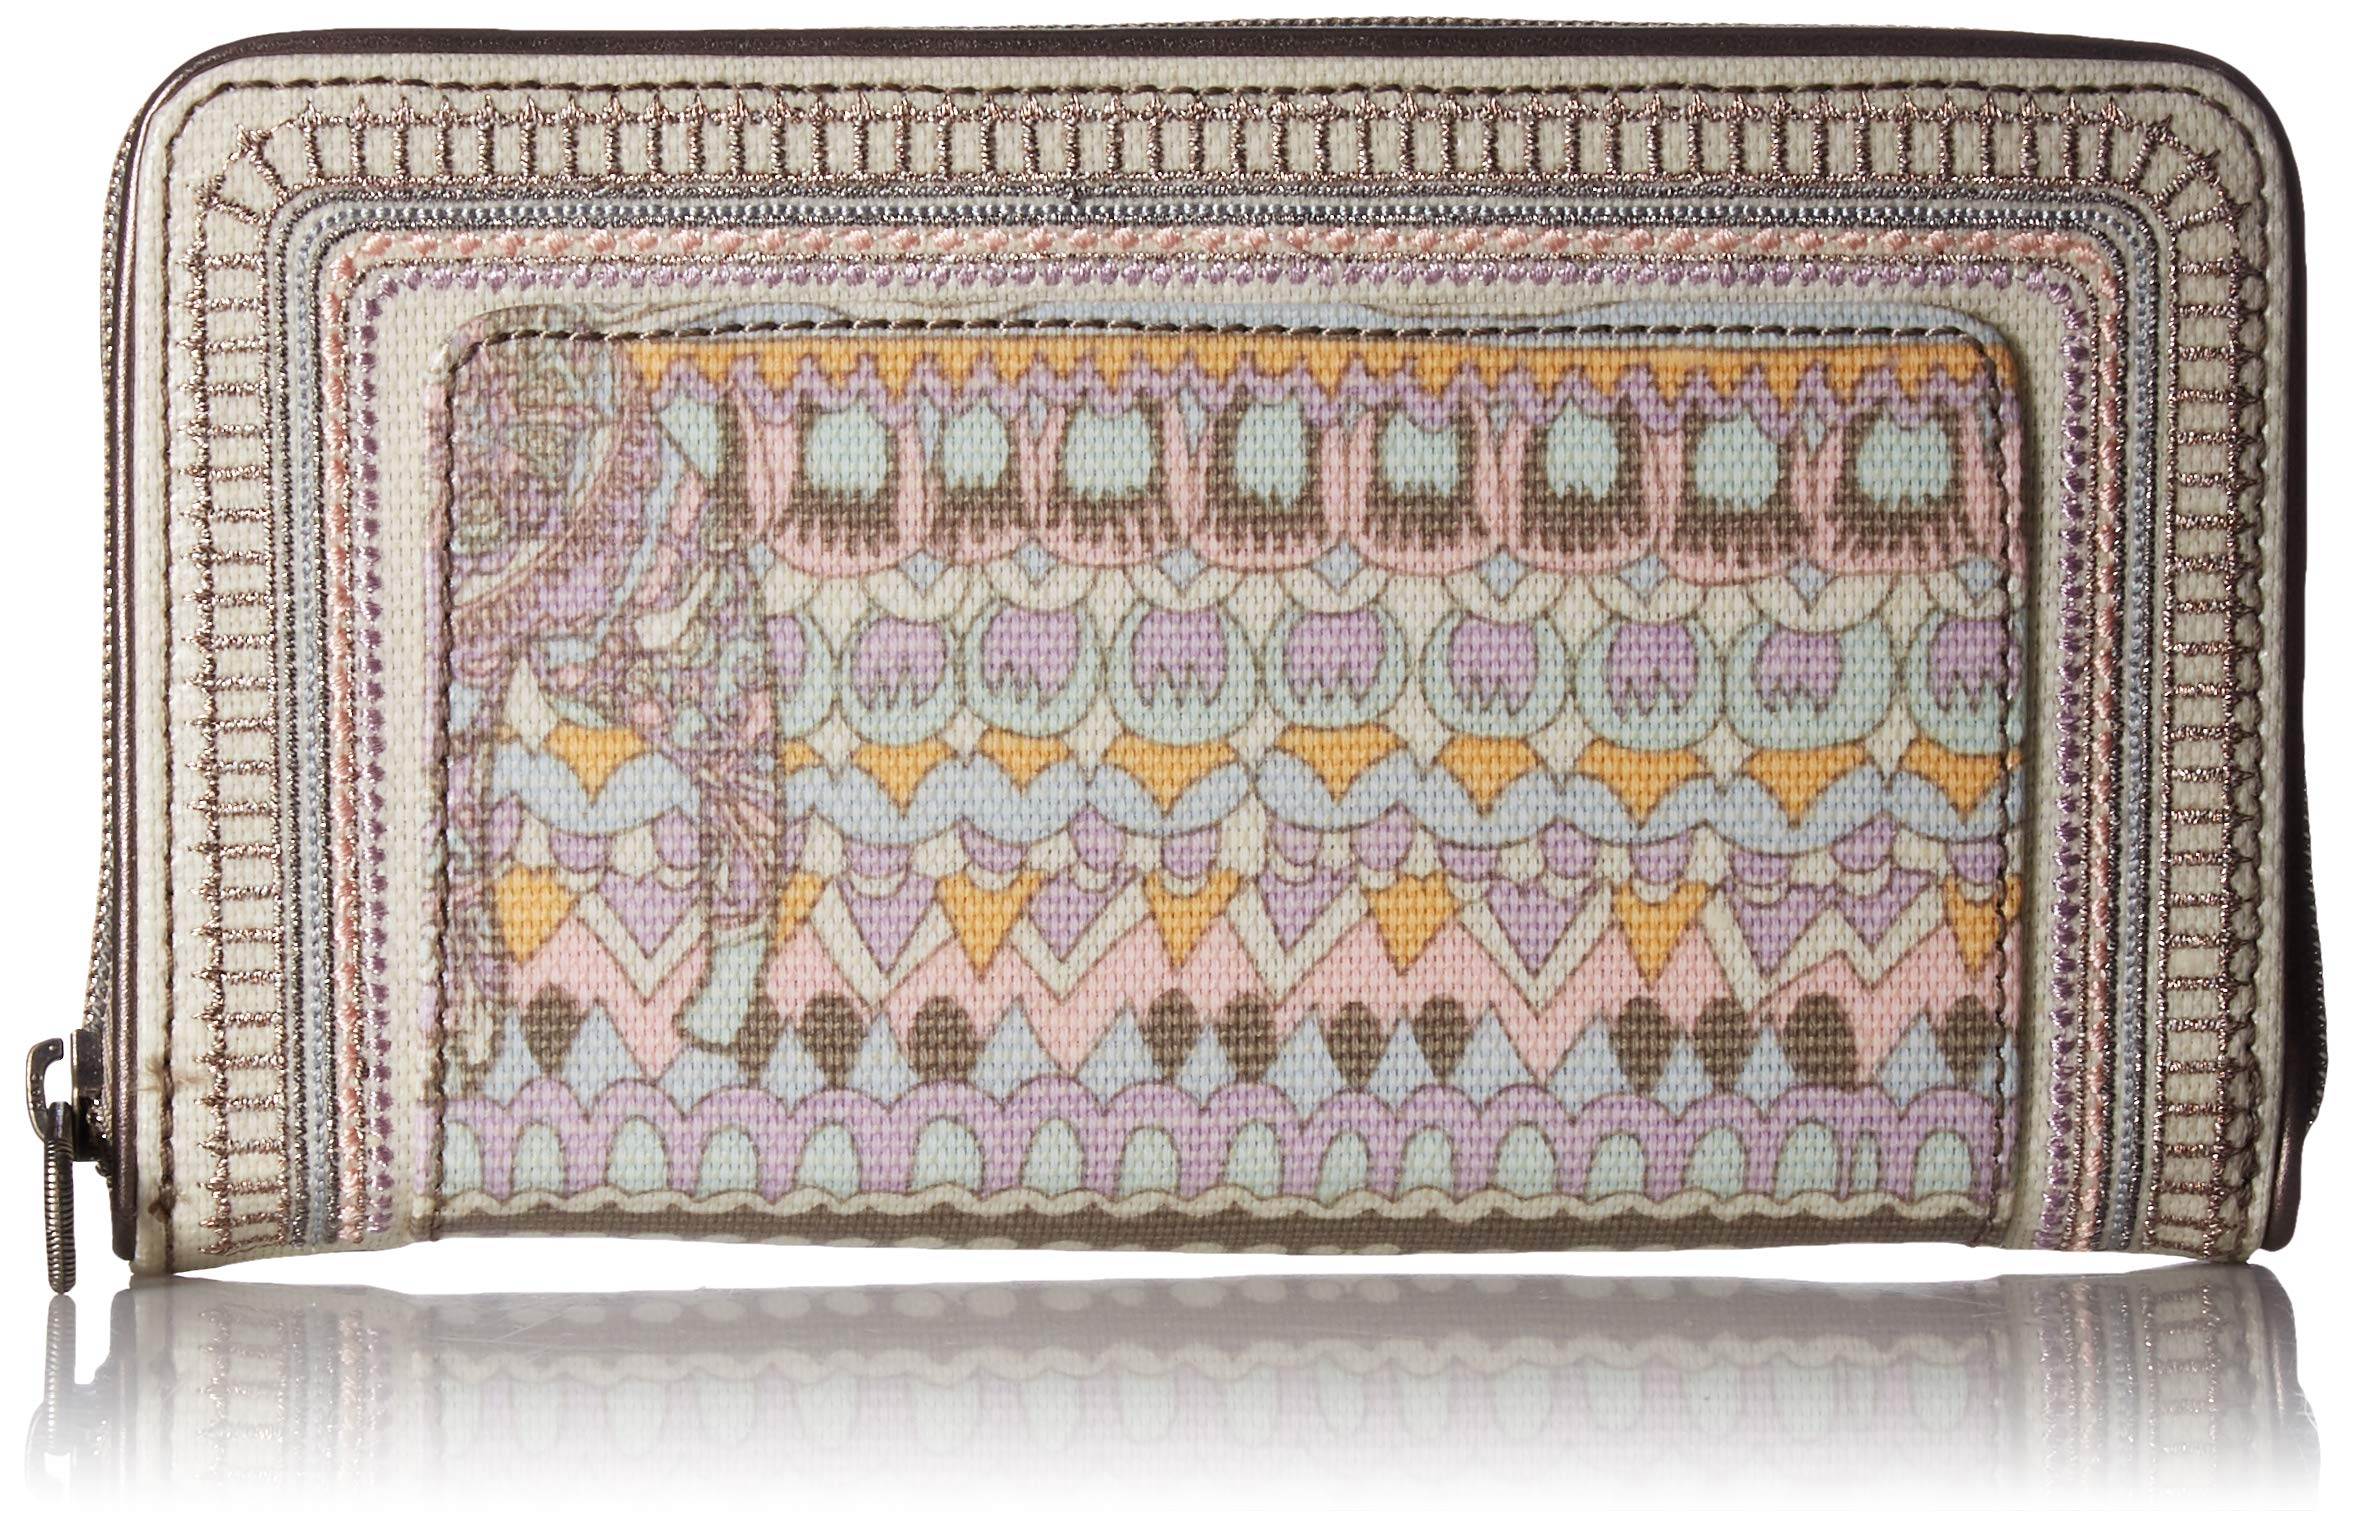 Sakroots Unisex-adults Large Zip Around Wallet, Pastel One World